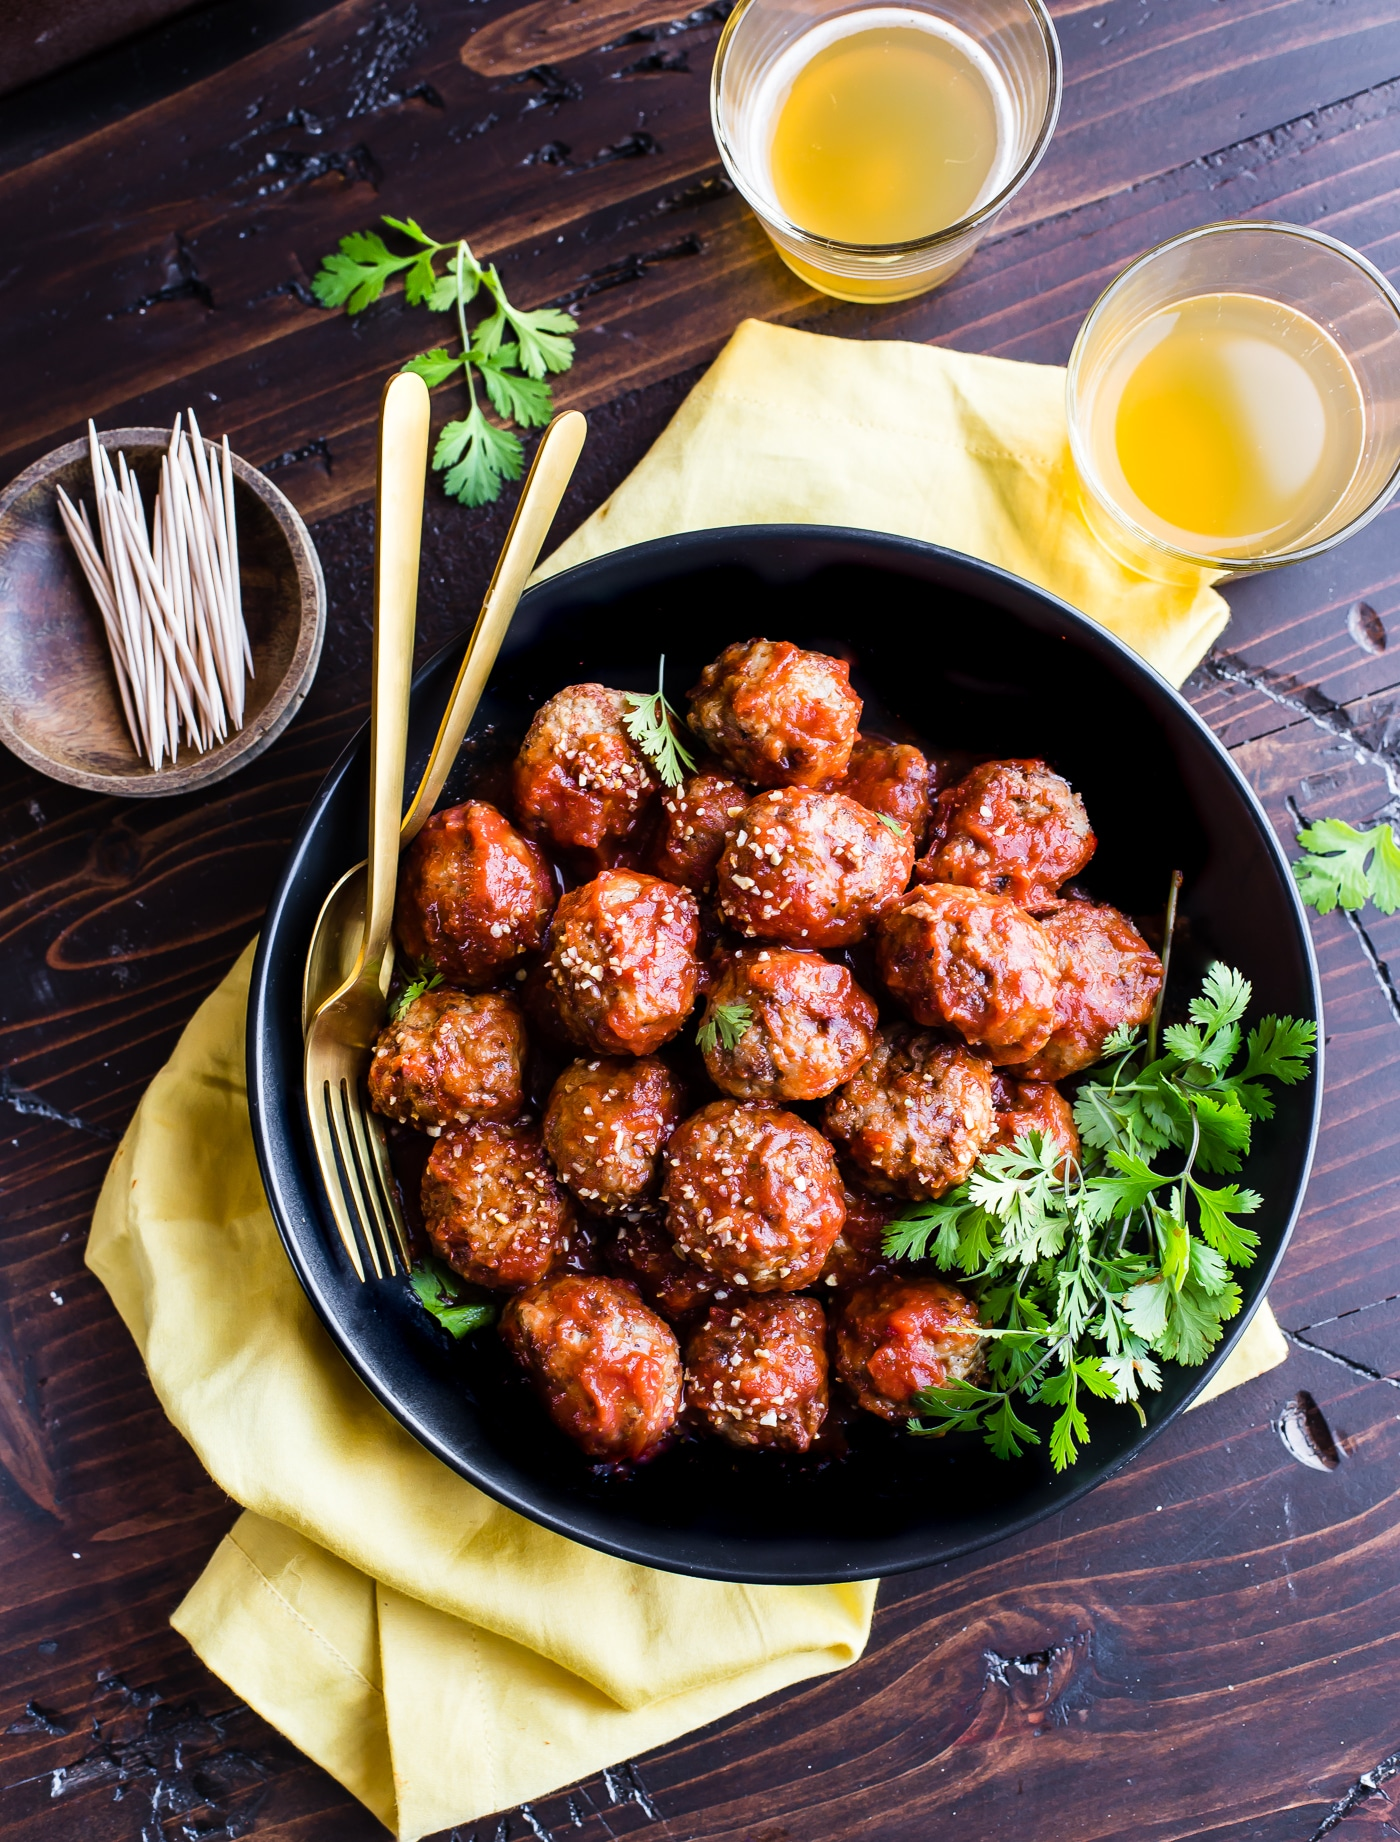 Paleo Meatballs with a sweet Sriracha sauce! These sweet and spicy Paleo meatballs are easy to make in under 45 minutes. Simple ingredients, super tasty, and protein packed! Great as an appetizer, meal, or meal prep addition. Freezer friendly, whole 30 friendly.